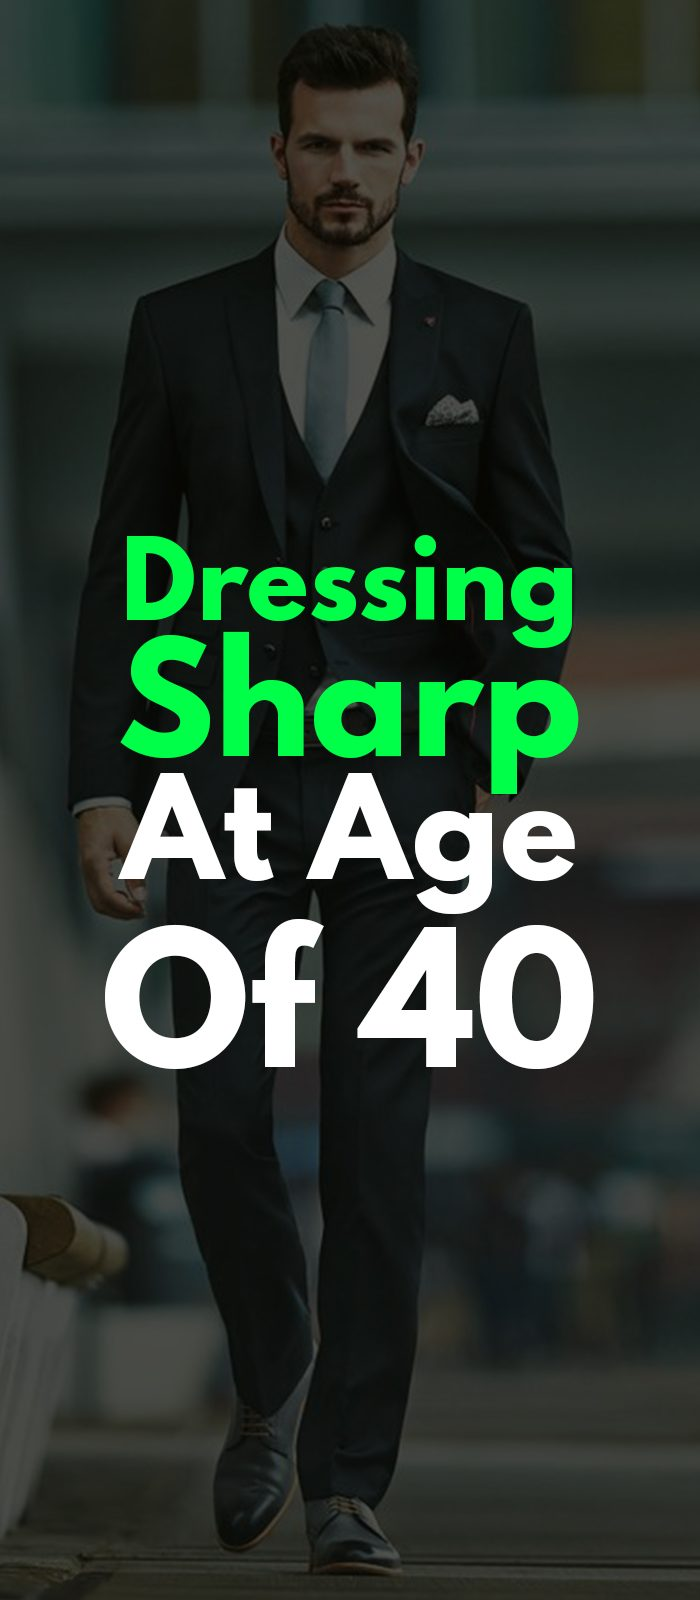 DRESSING SHARP AT AGE OF 40